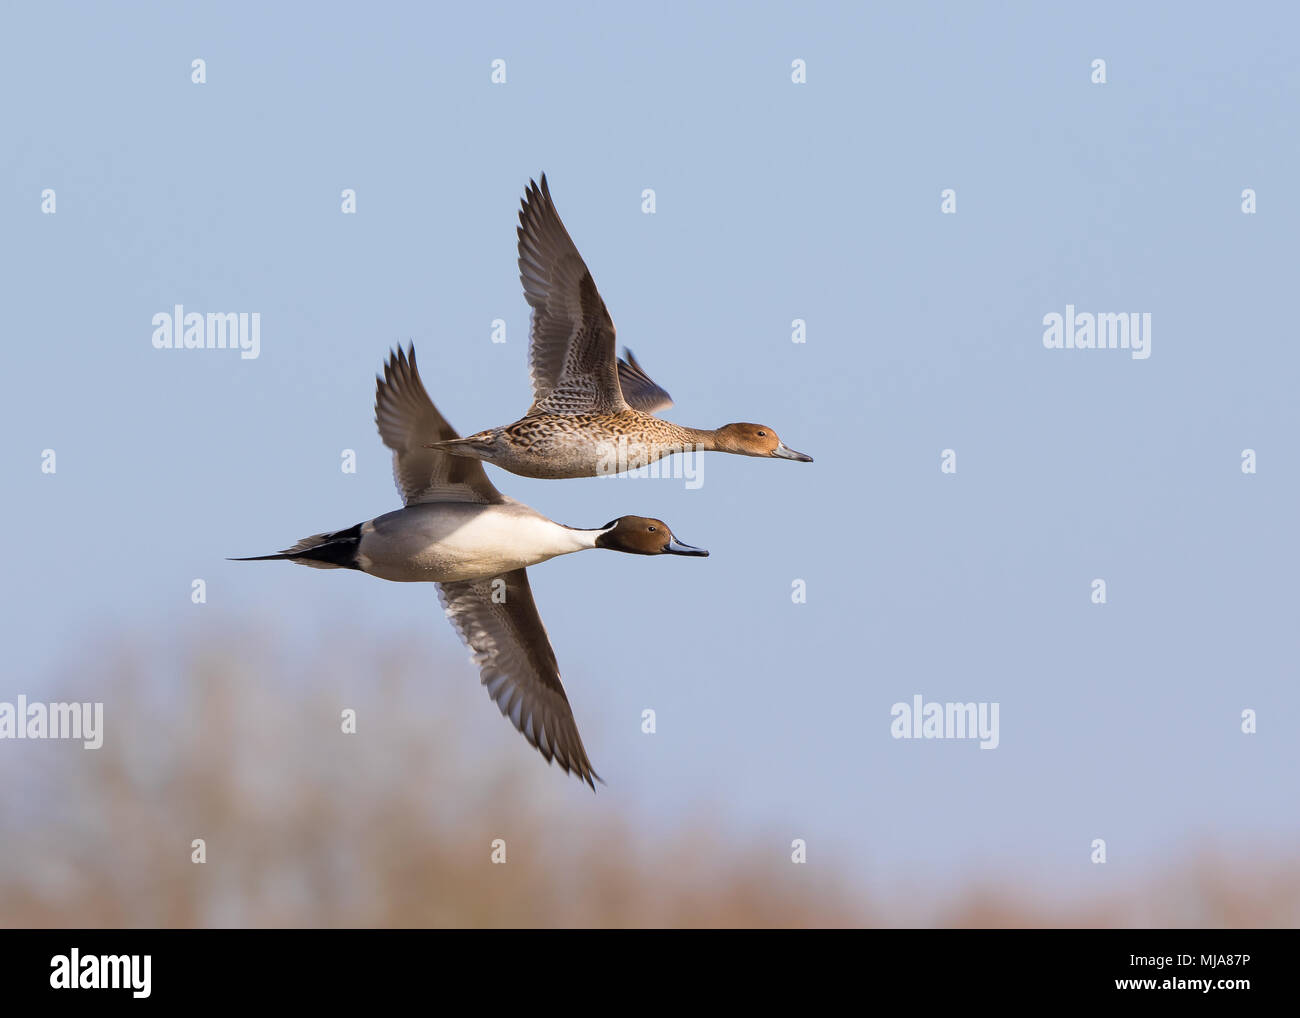 Landscape shot, pair of pintail ducks (Anas acuta) male & female, together in synchronized flight, necks extended. Heading right against sky backdrop. - Stock Image